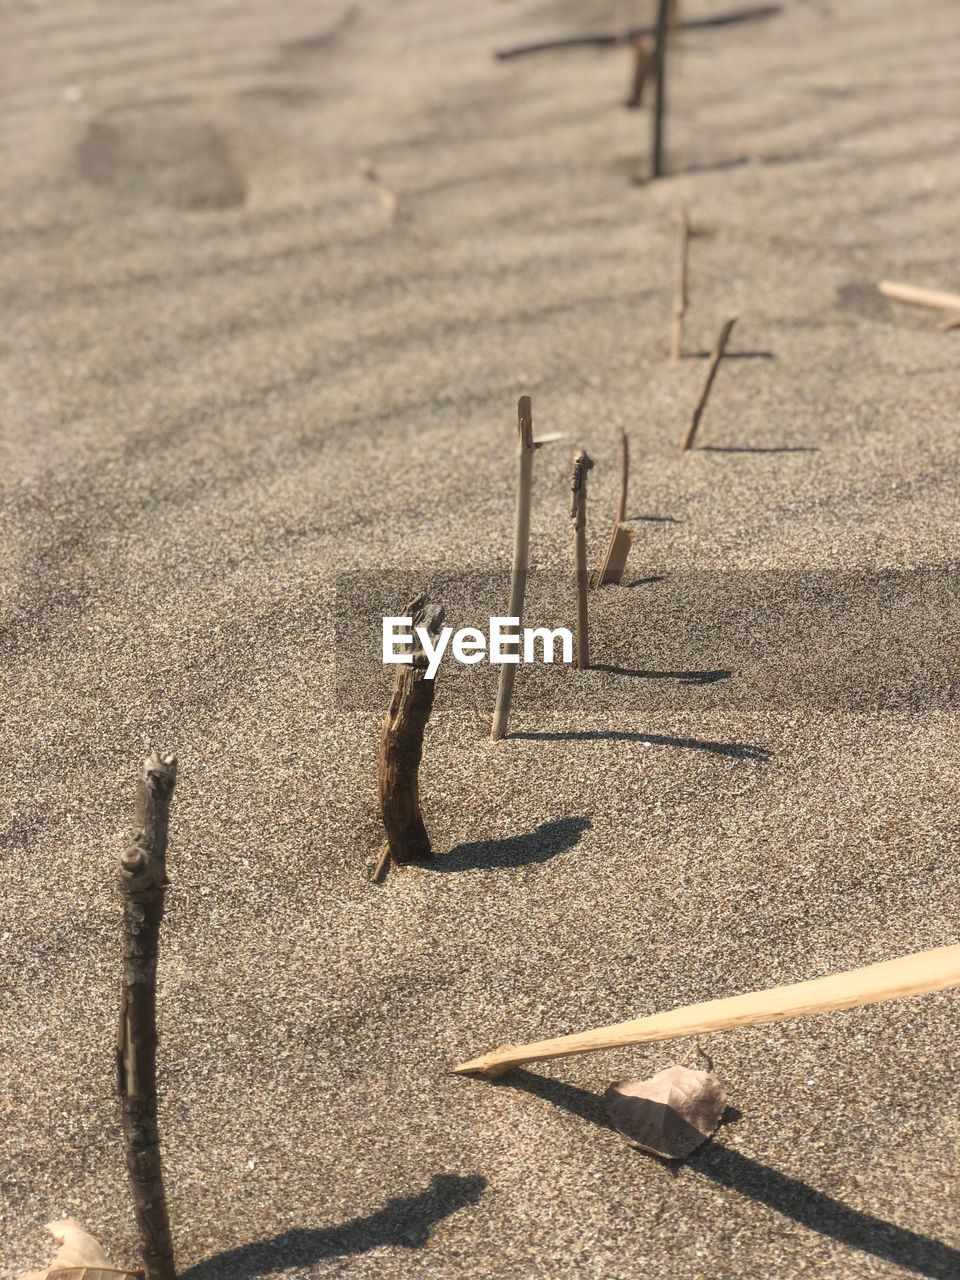 high angle view, shadow, sunlight, day, sand, land, nature, no people, beach, outdoors, creativity, human representation, focus on foreground, close-up, art and craft, representation, text, direction, textured